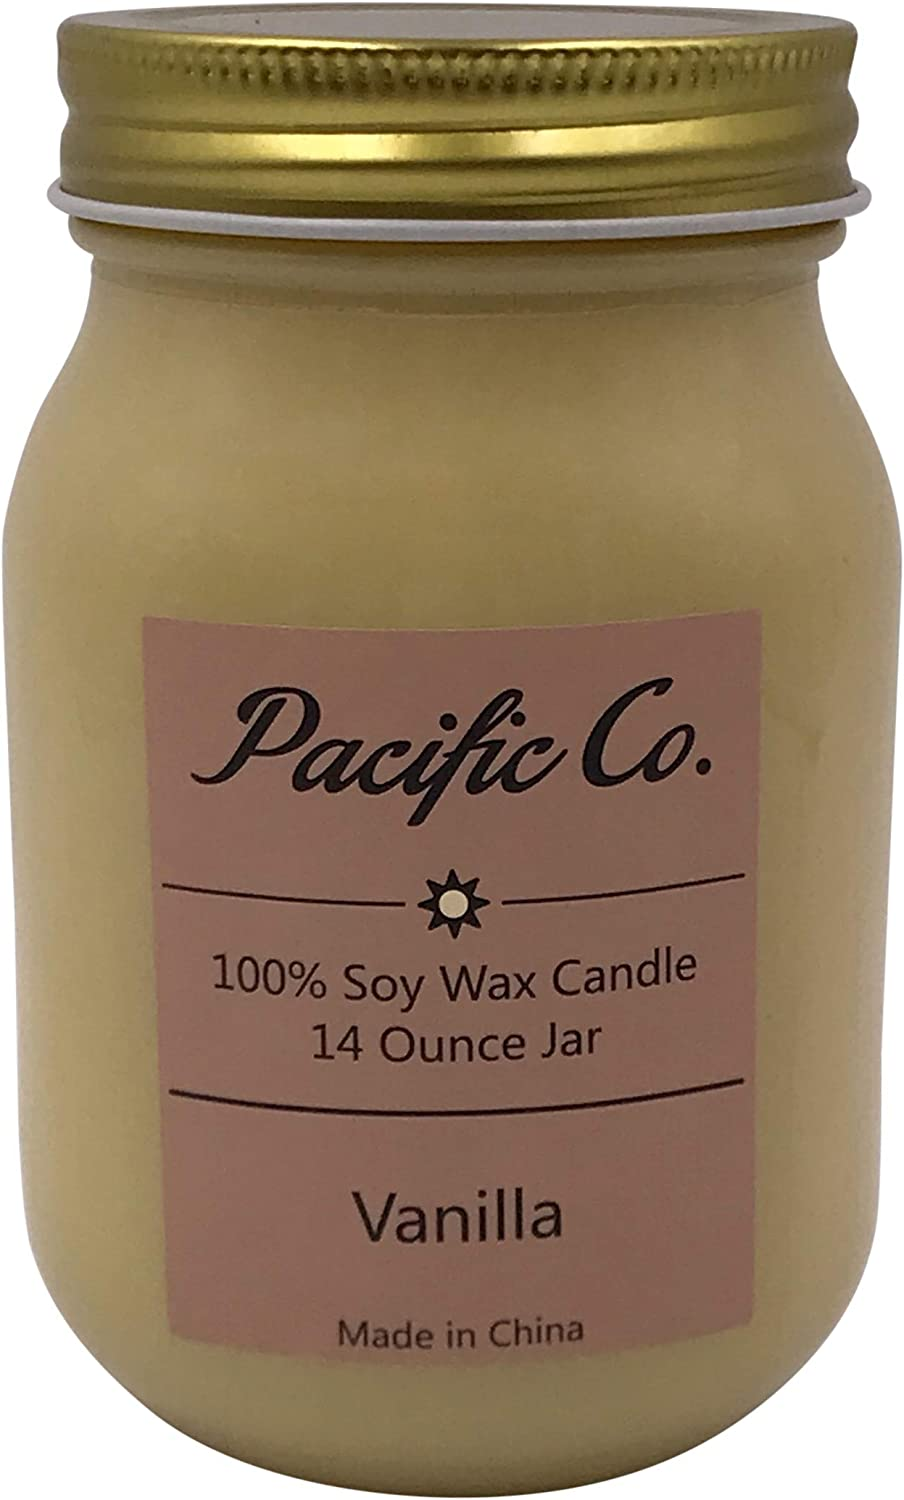 One 100/% Soy Wax Scented Jar Candles 14 Ounce Also Suitable for Aromatherapy Approximately 75 Hours of Burn Time Country Christmas